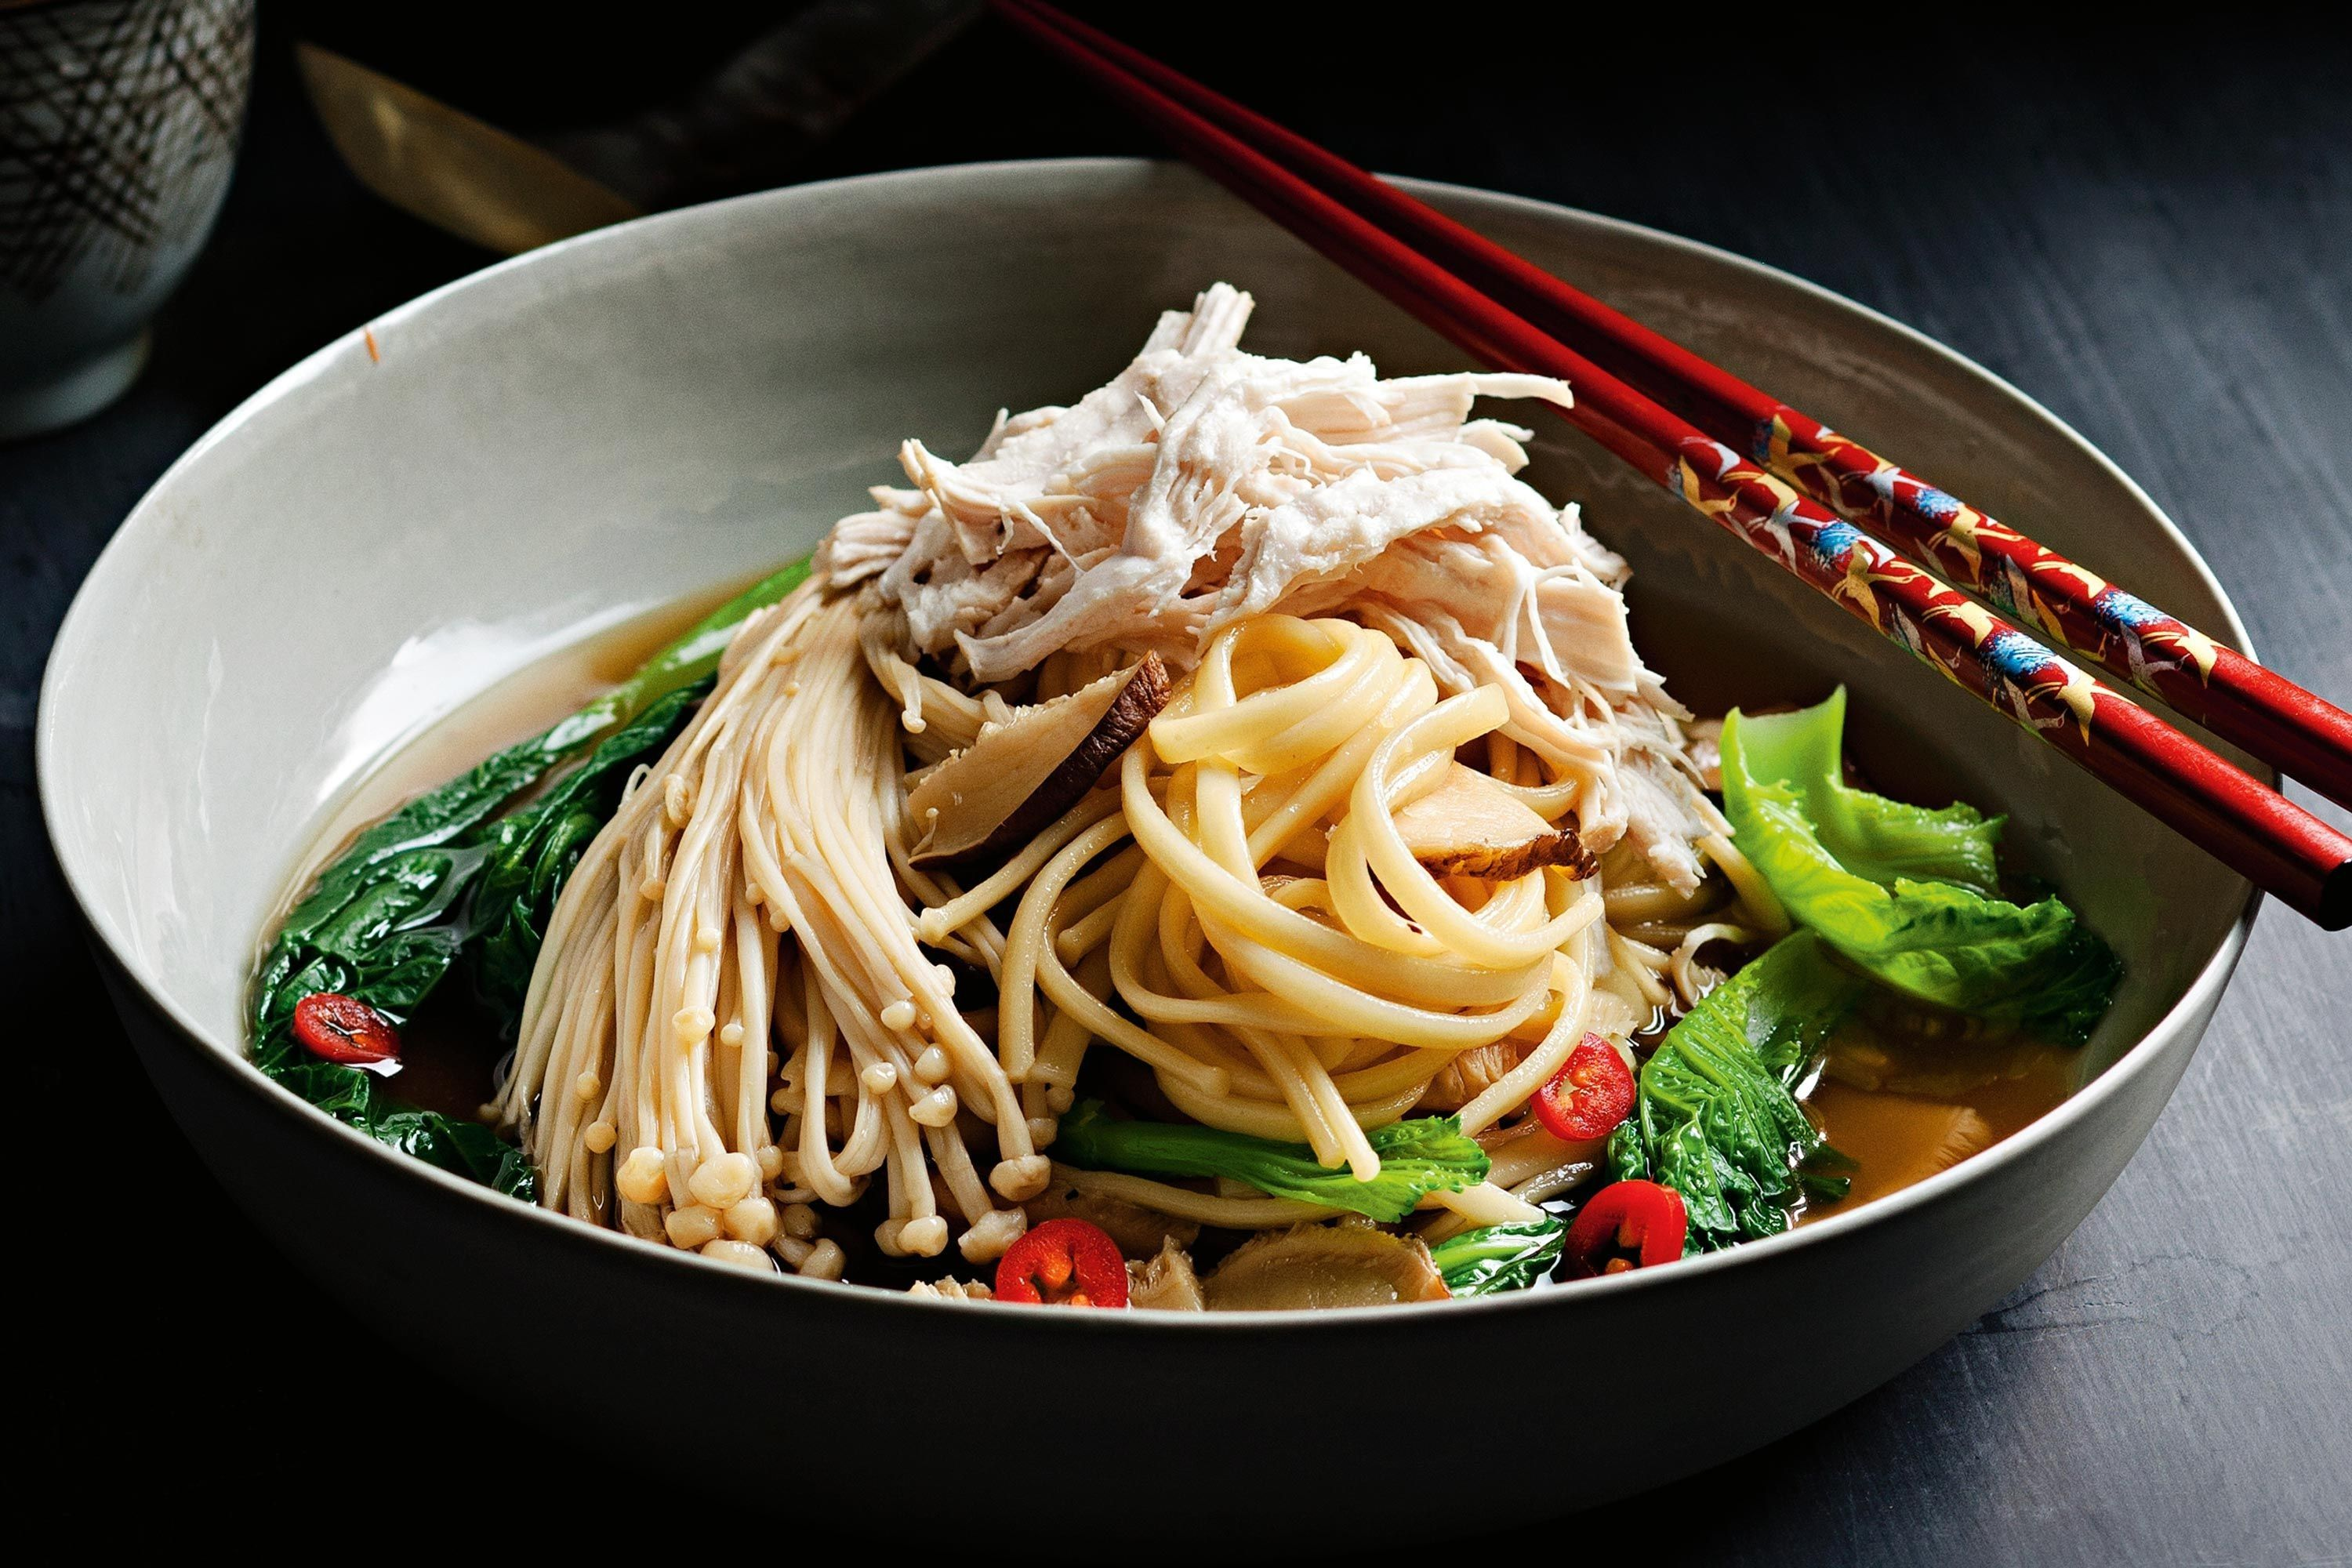 The chicken in this dish is lightly poached in sake, soy and sugar for an authentic Japanese flavour.